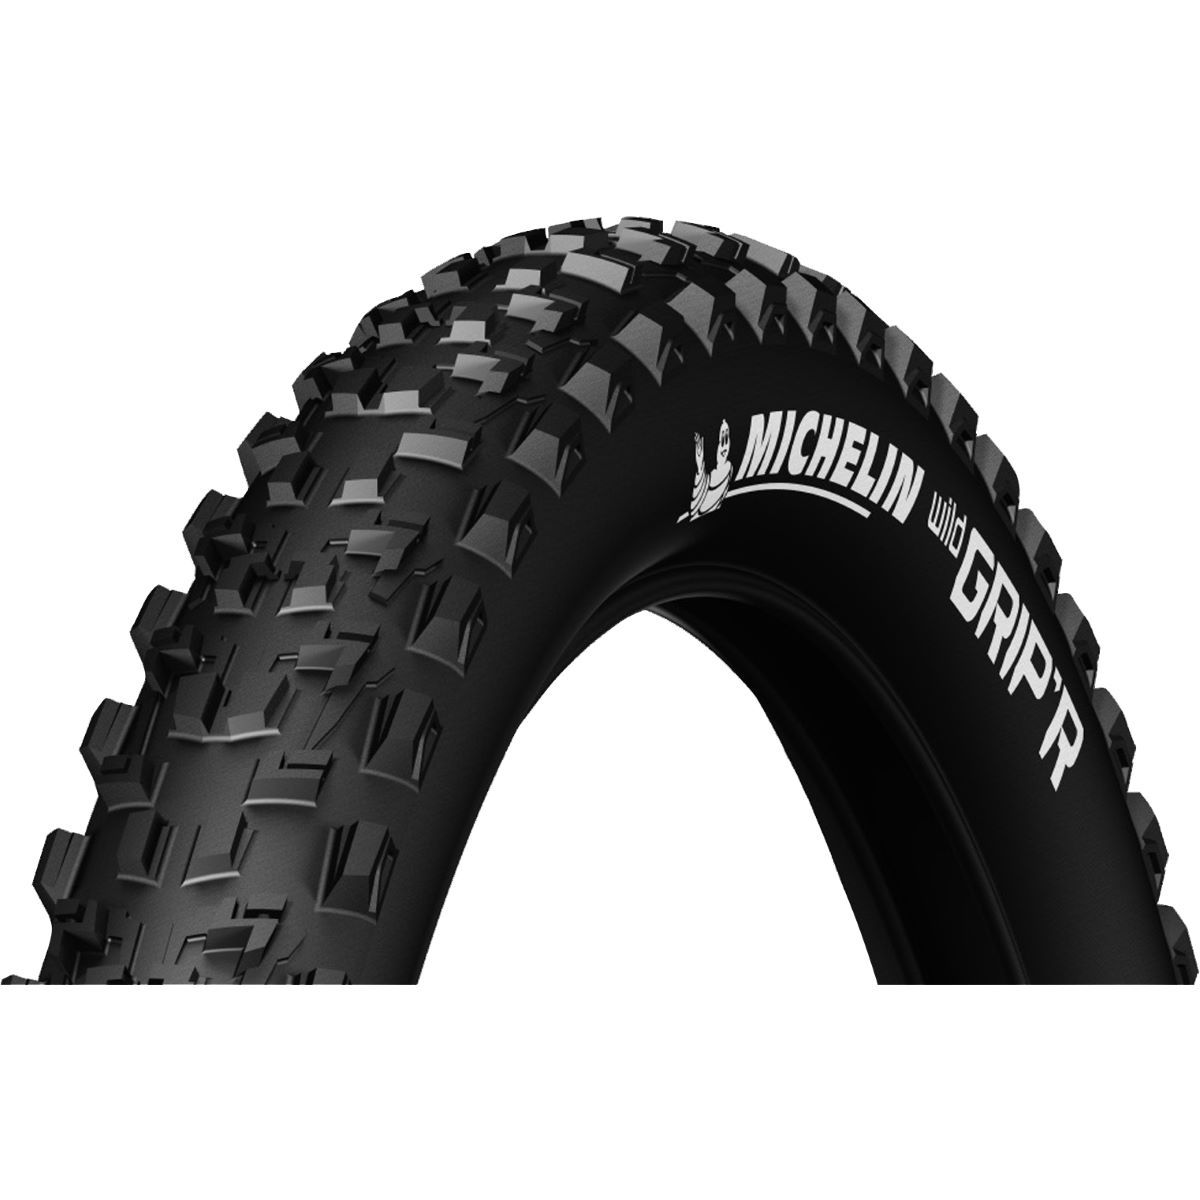 Pneu Michelin Wild Grip'R Advanced Reinforced Magi-X 27,5 pouces - 27.5 x 2.35 Noir Pneus VTT